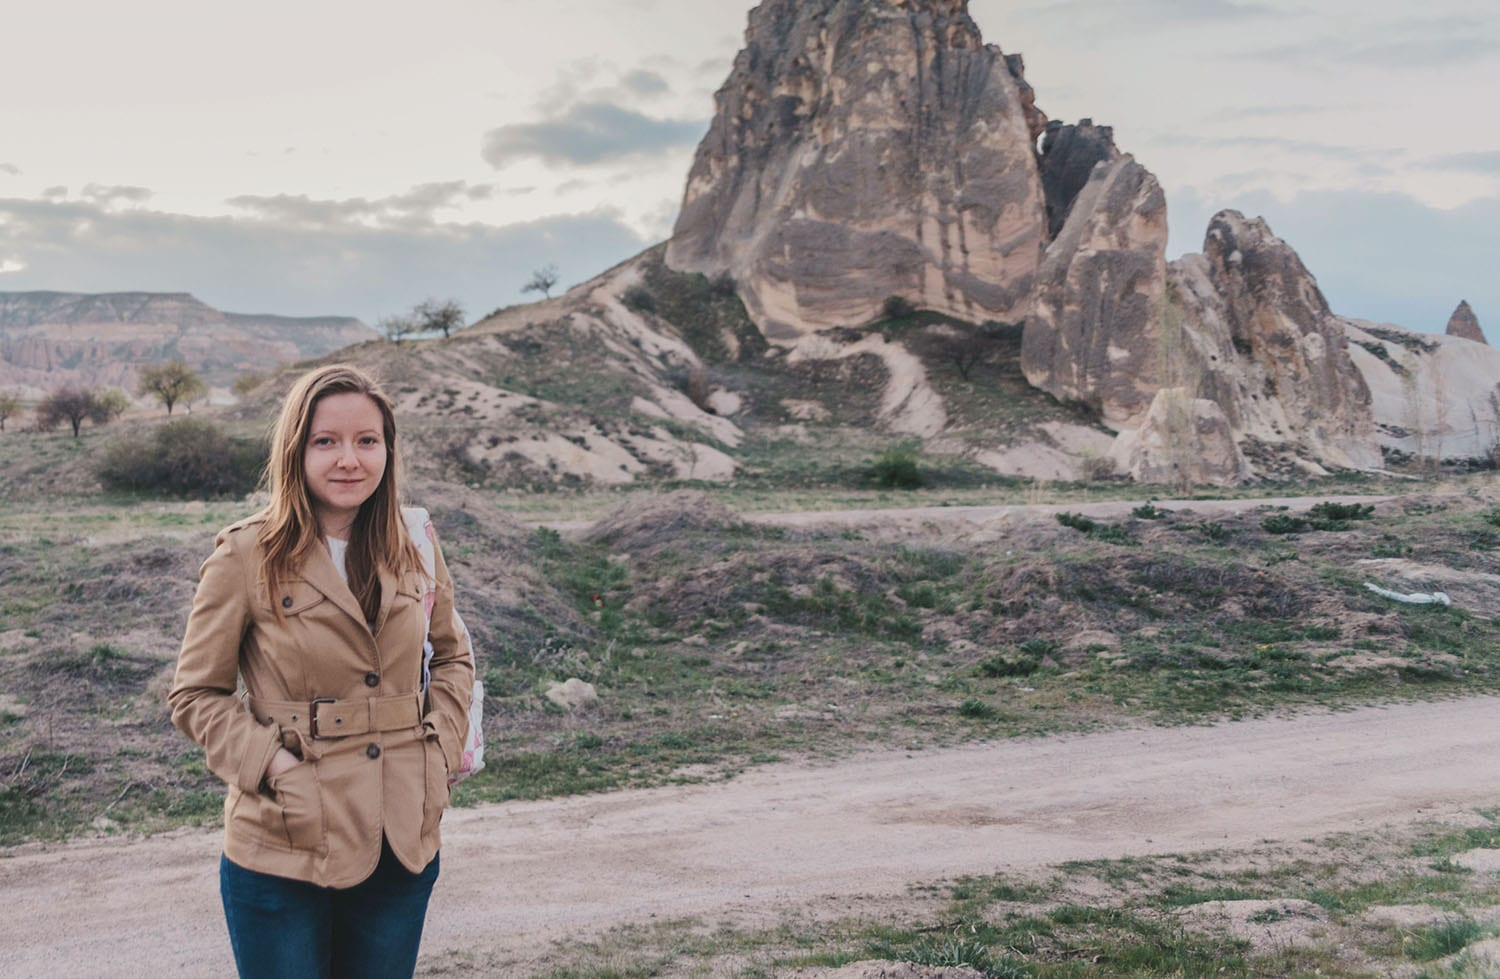 Sanna in Cappadocia, Turkey before balloon flight